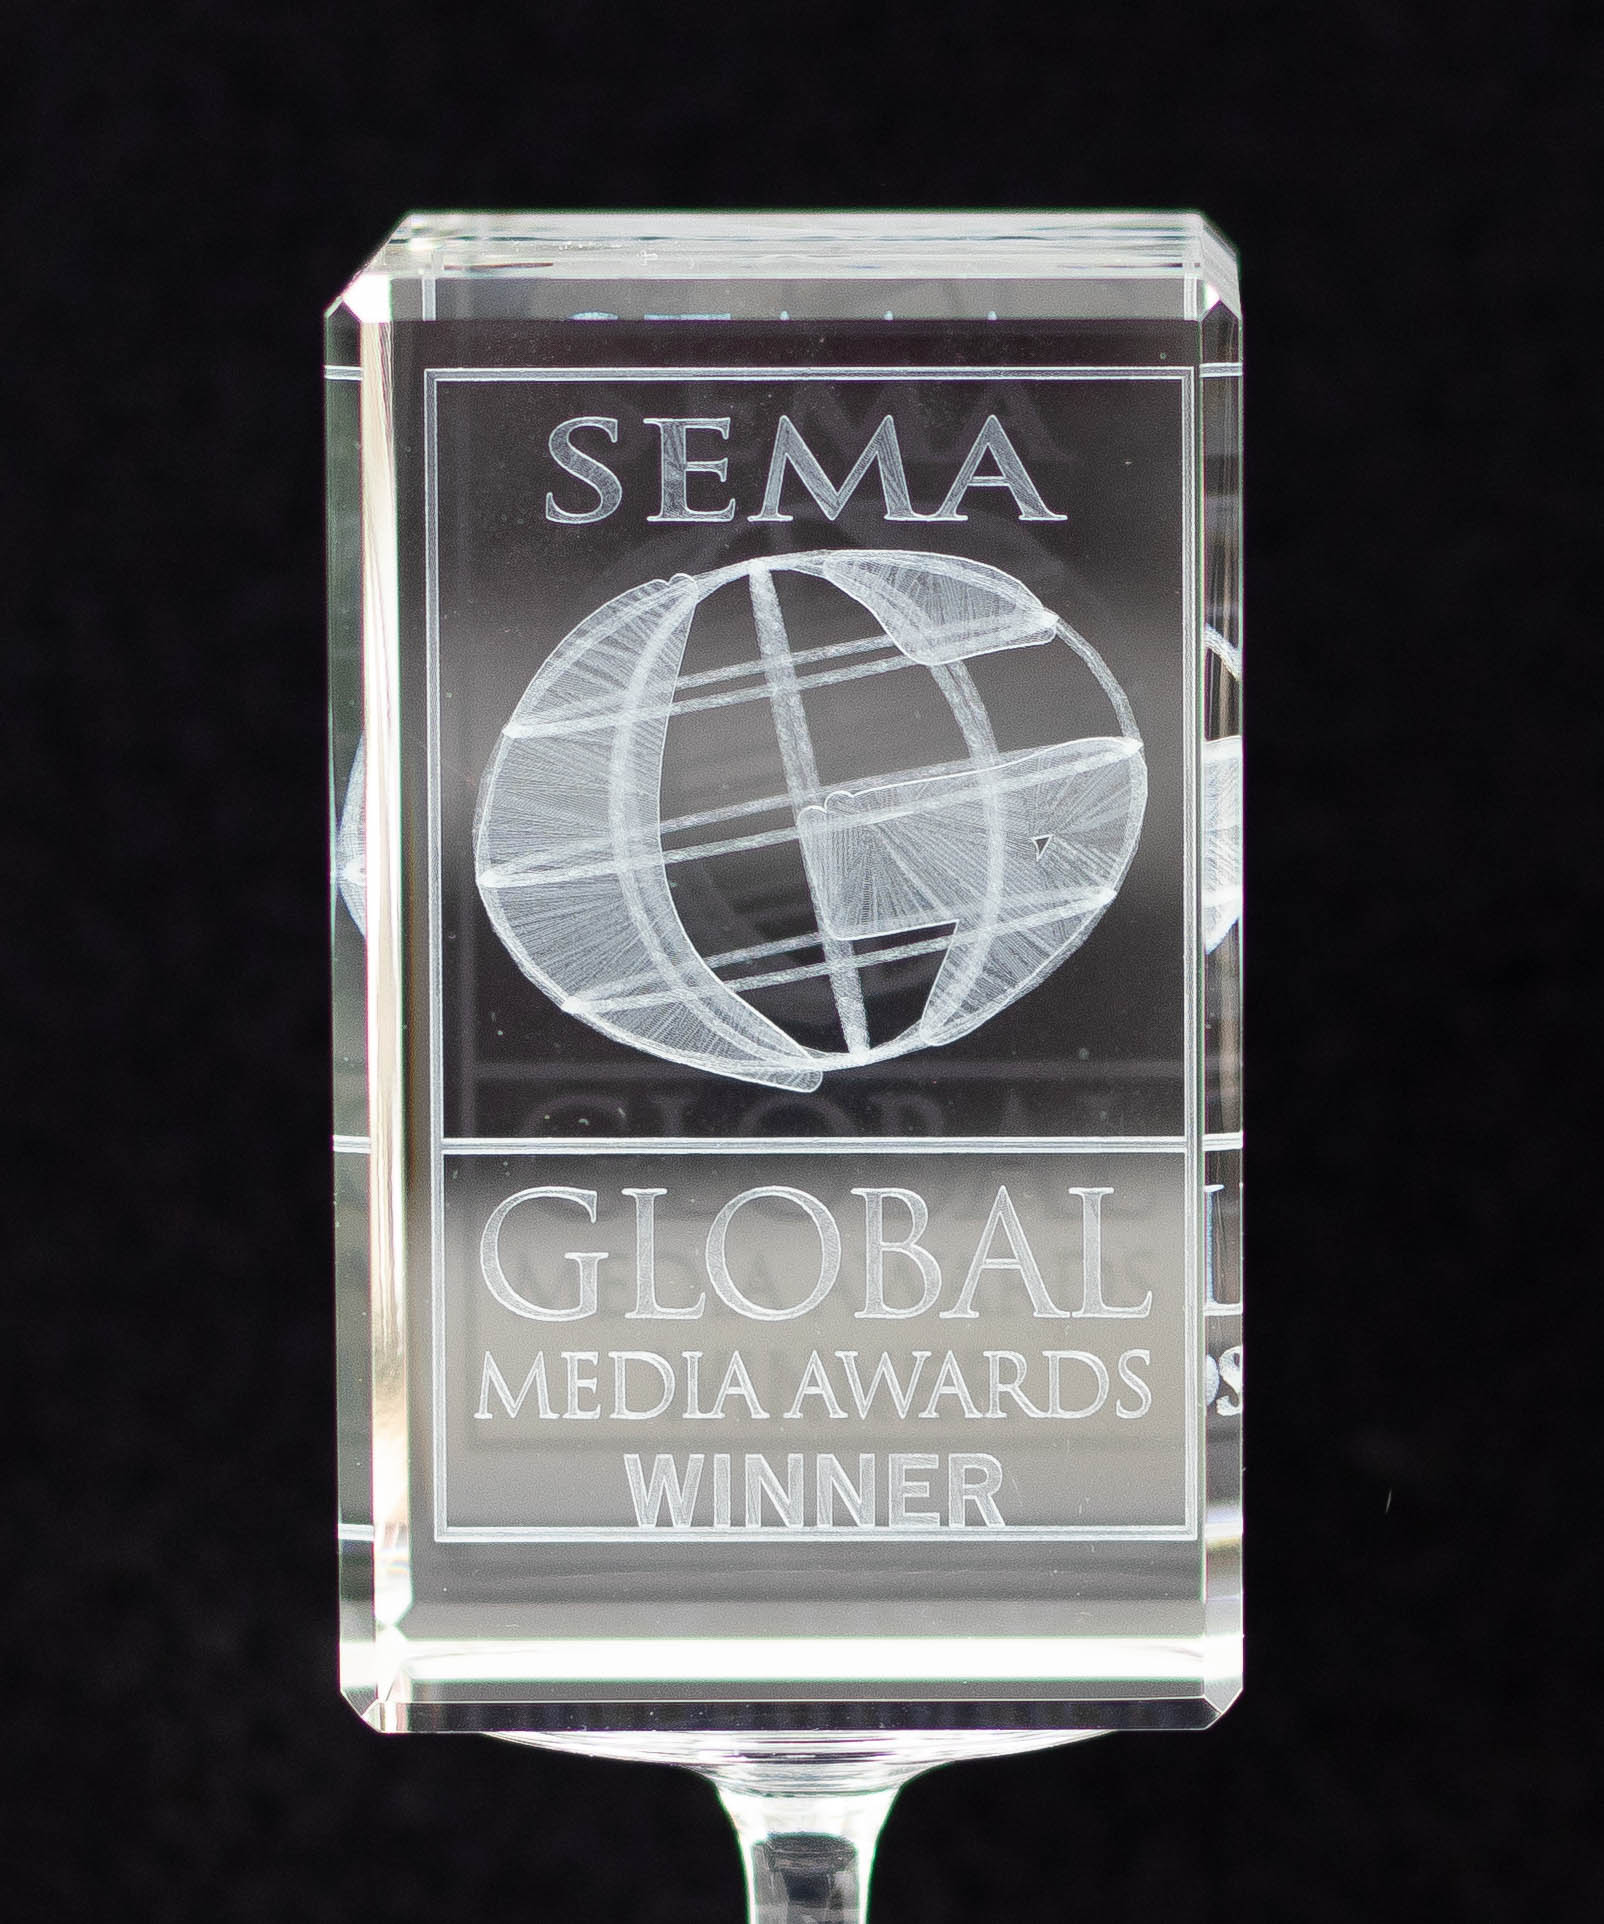 MiG Buddy - SEMA Global Media Award